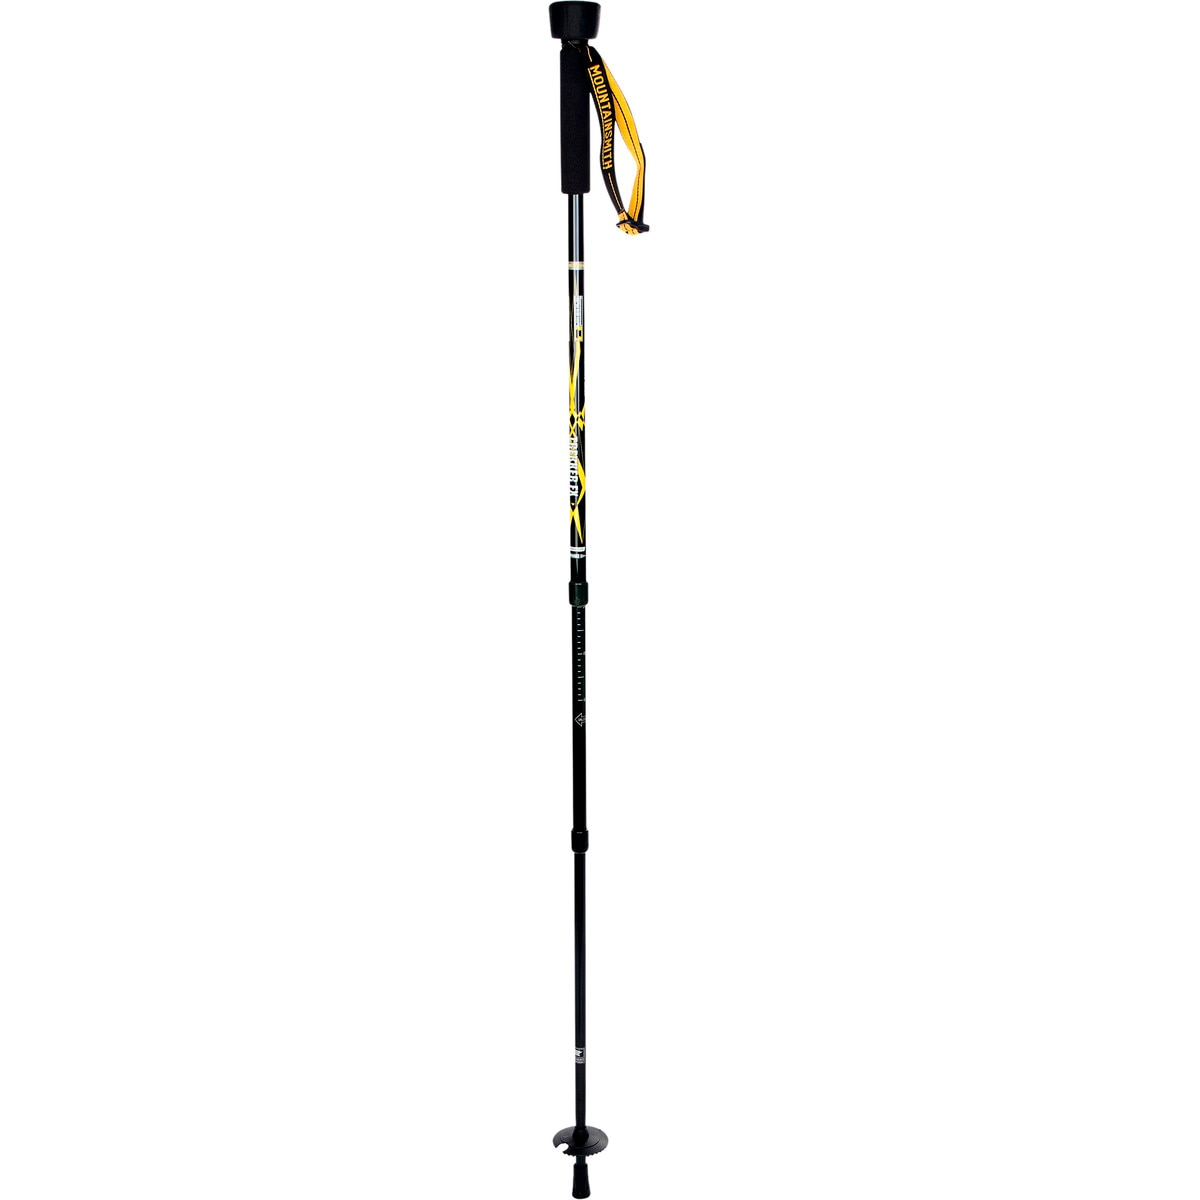 photo: Mountainsmith Trekker FX MonoPod